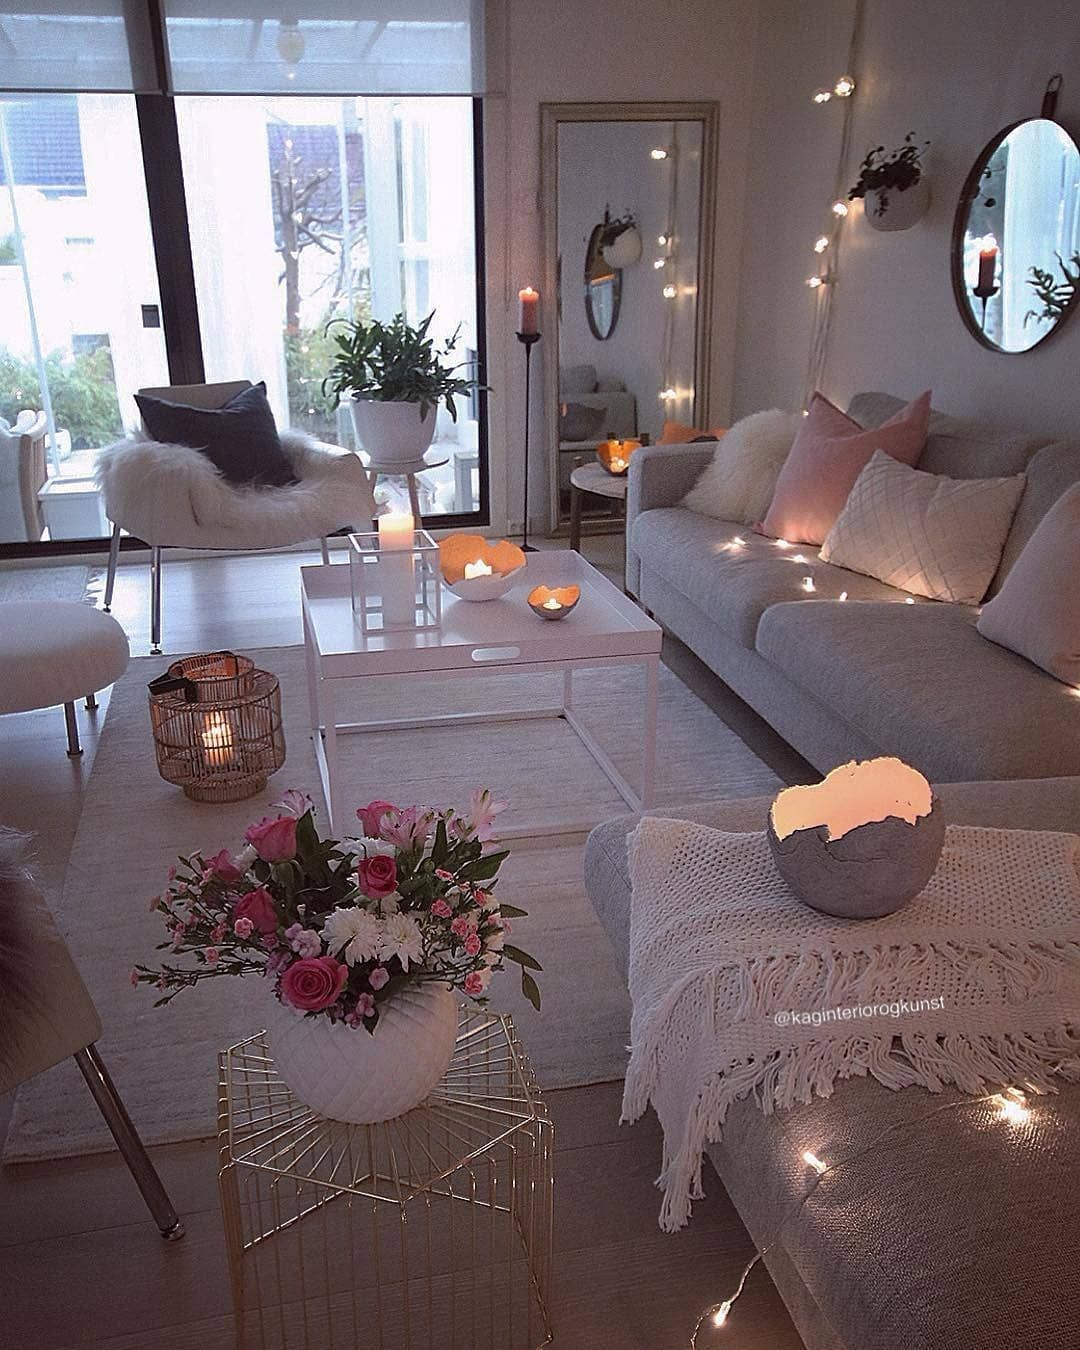 What A Cosy And Intimate Space Rustic Living Room Living Room Decor Apartment Living Room Decor